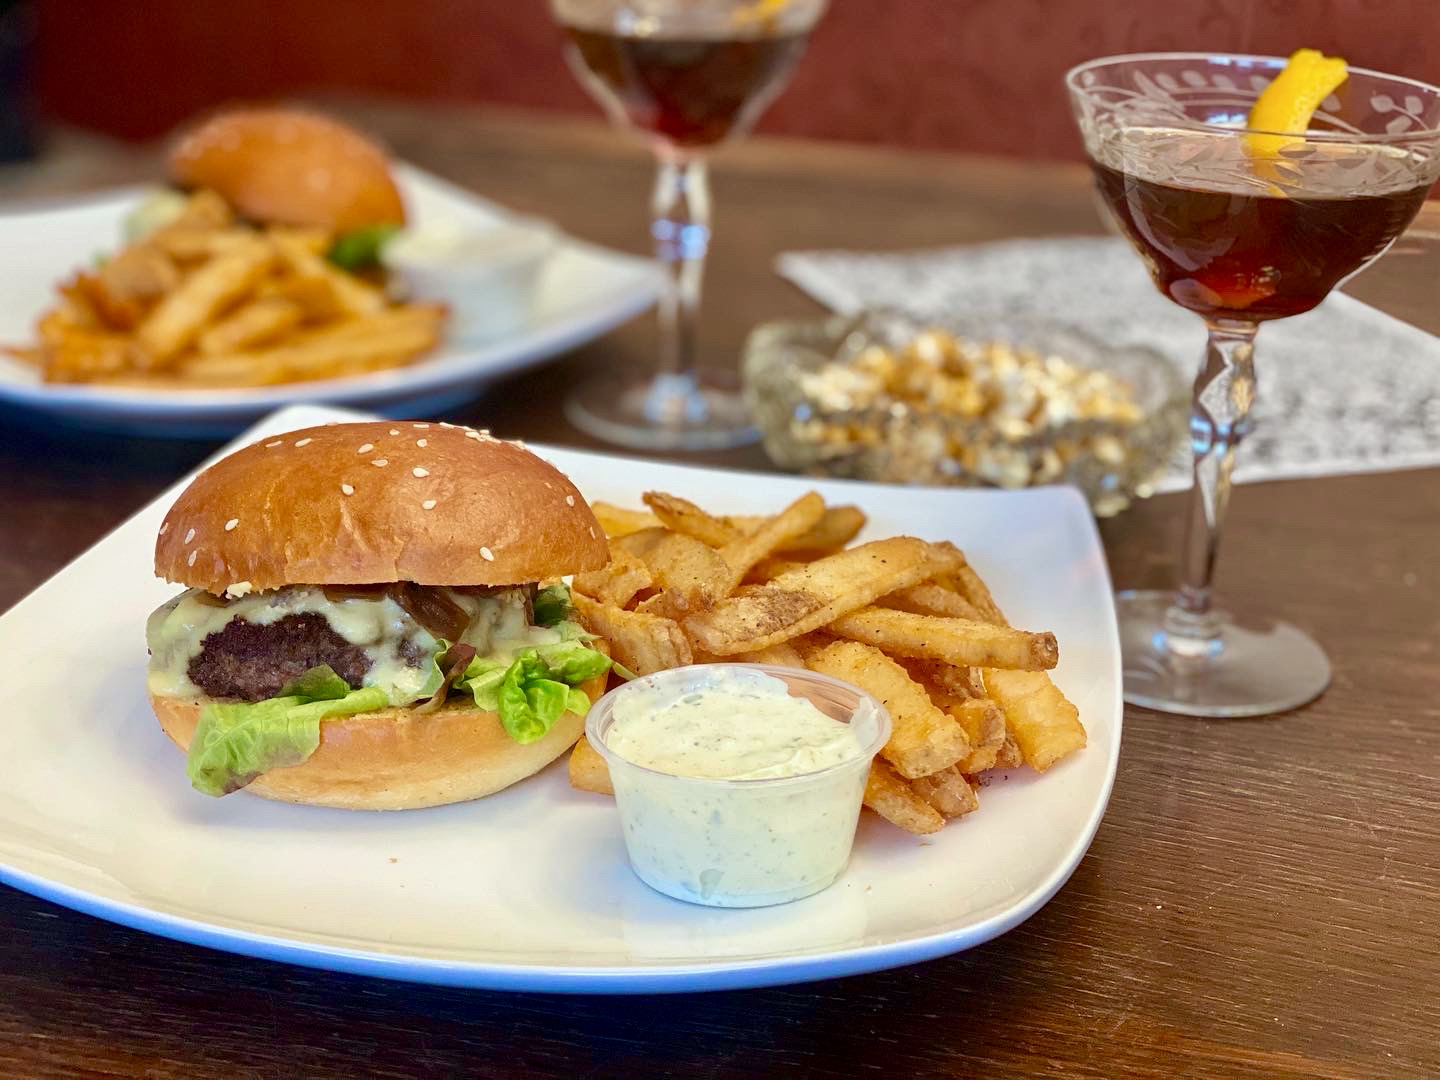 Burger, fries and Manhattan from Goodkind